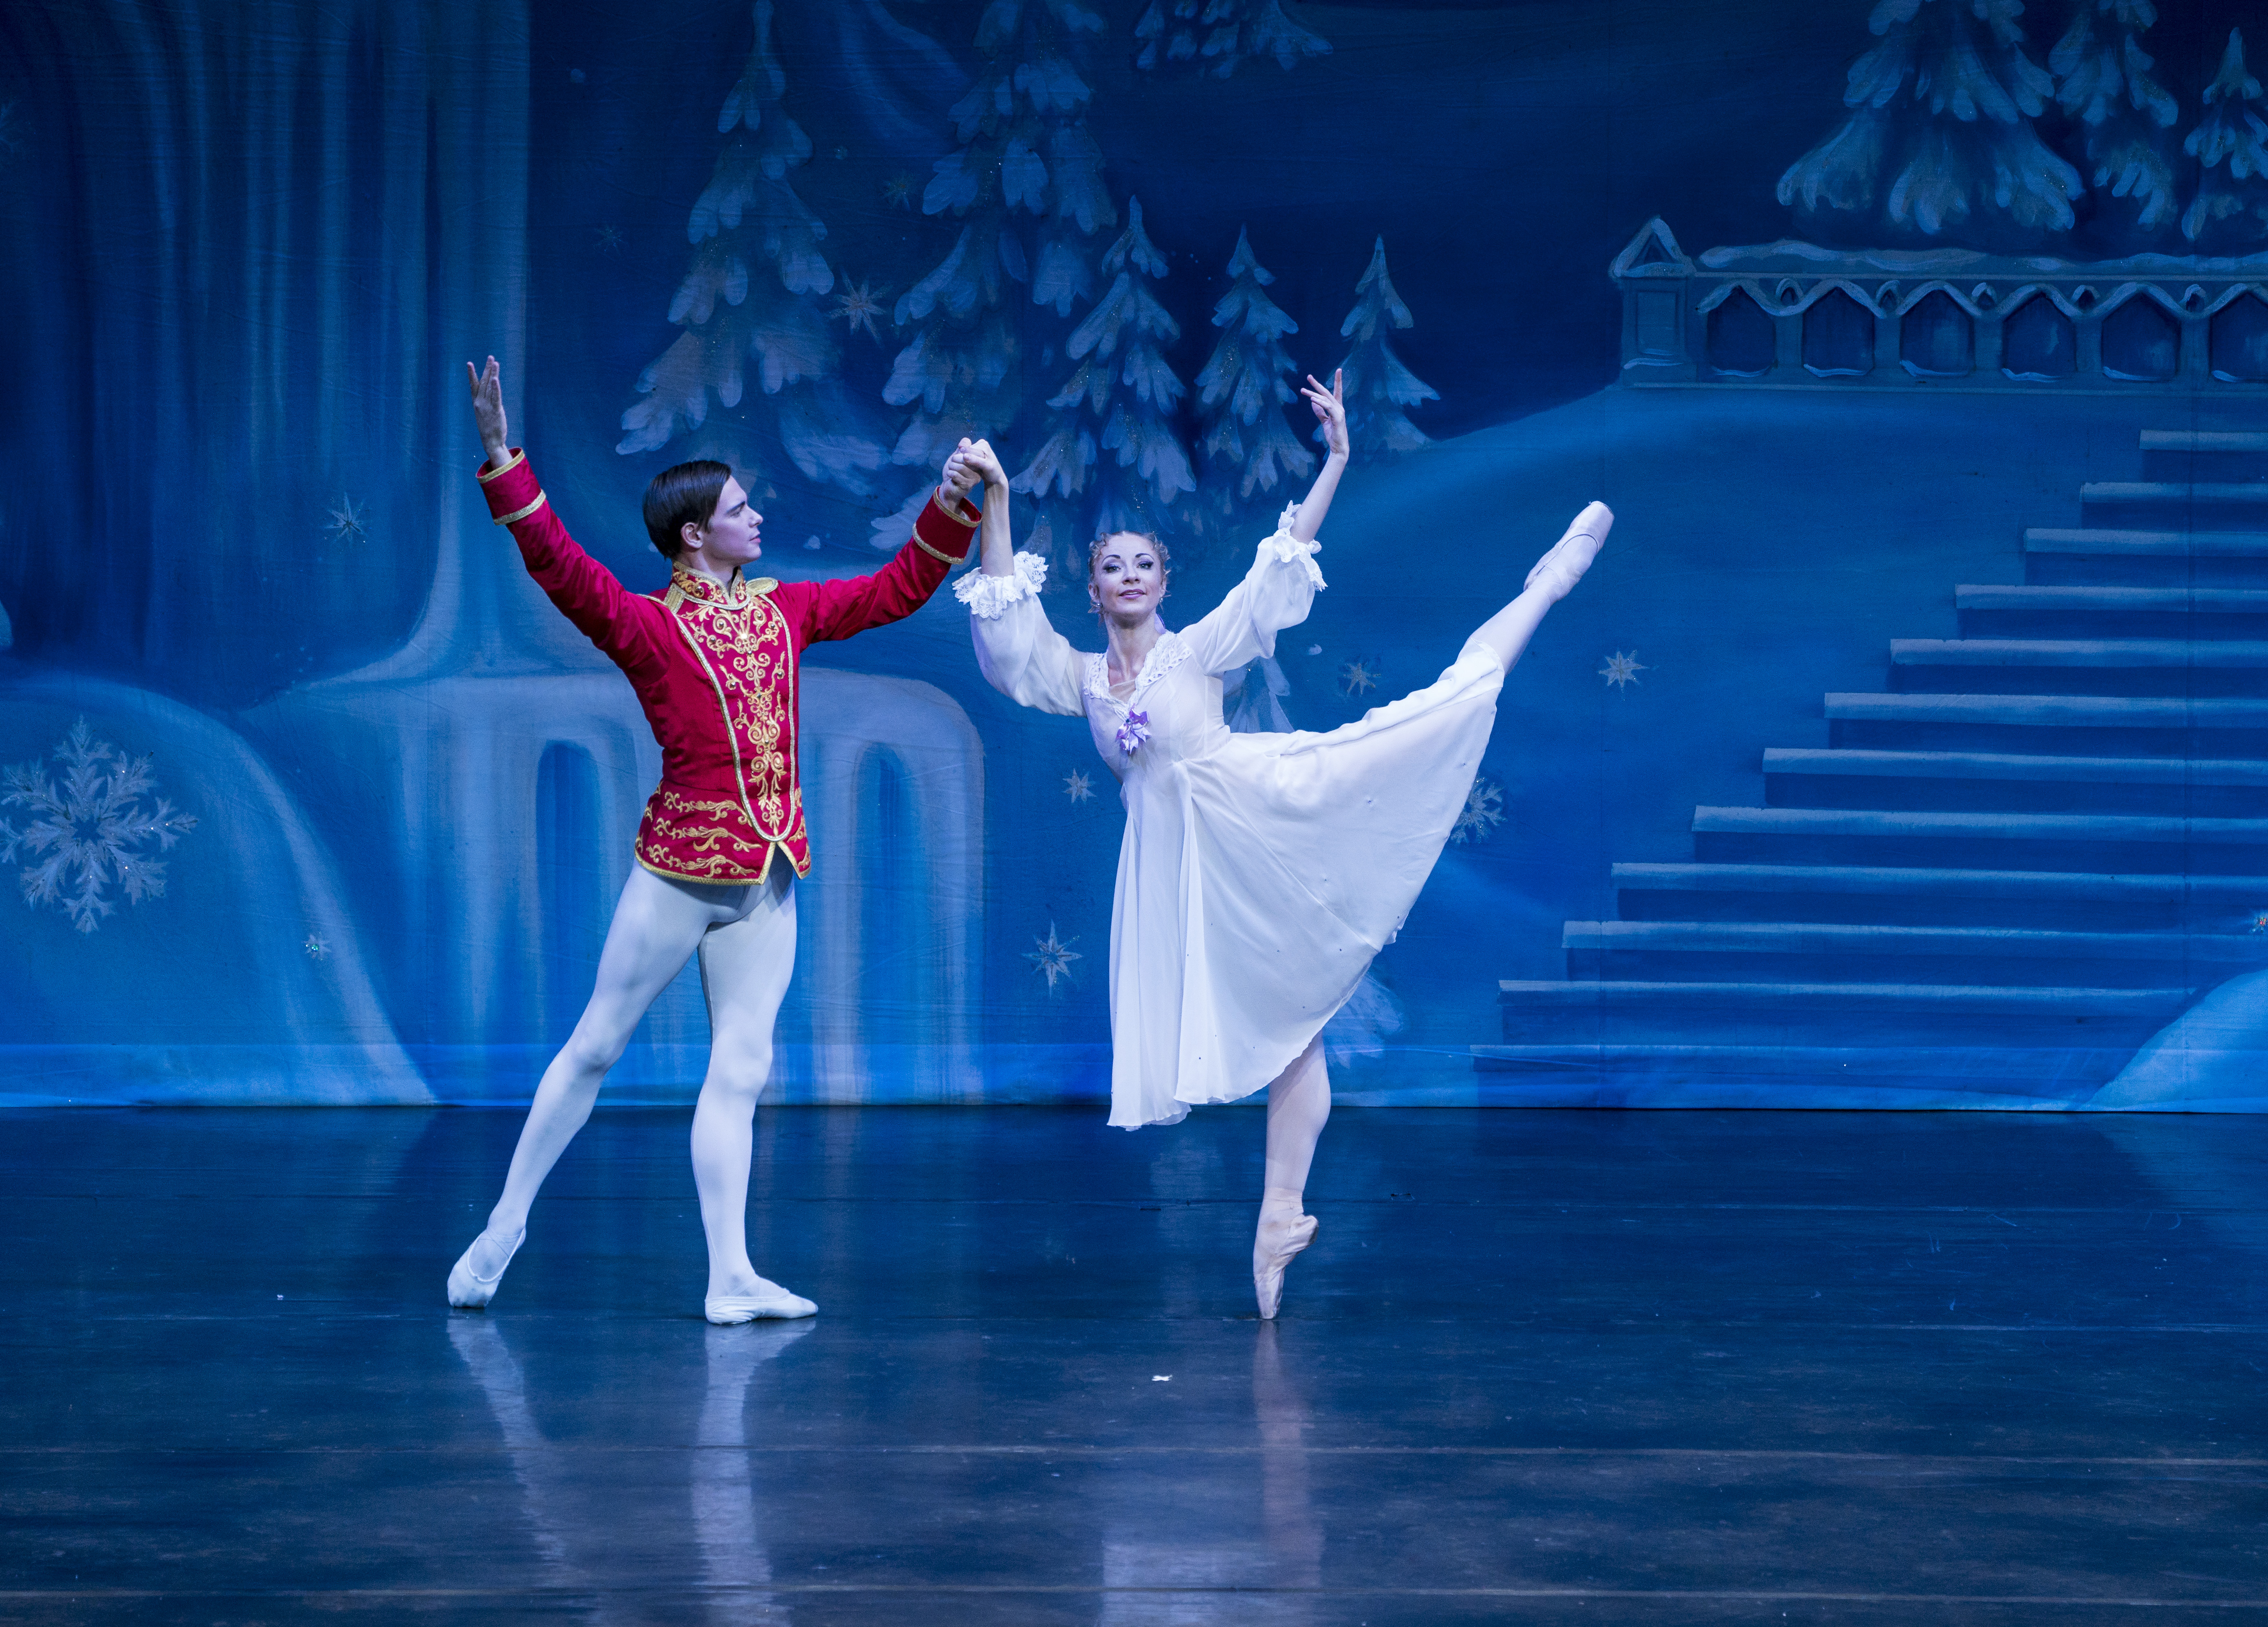 10. Masha and her Nutcracker Prince in the Great Russian Nutcracker